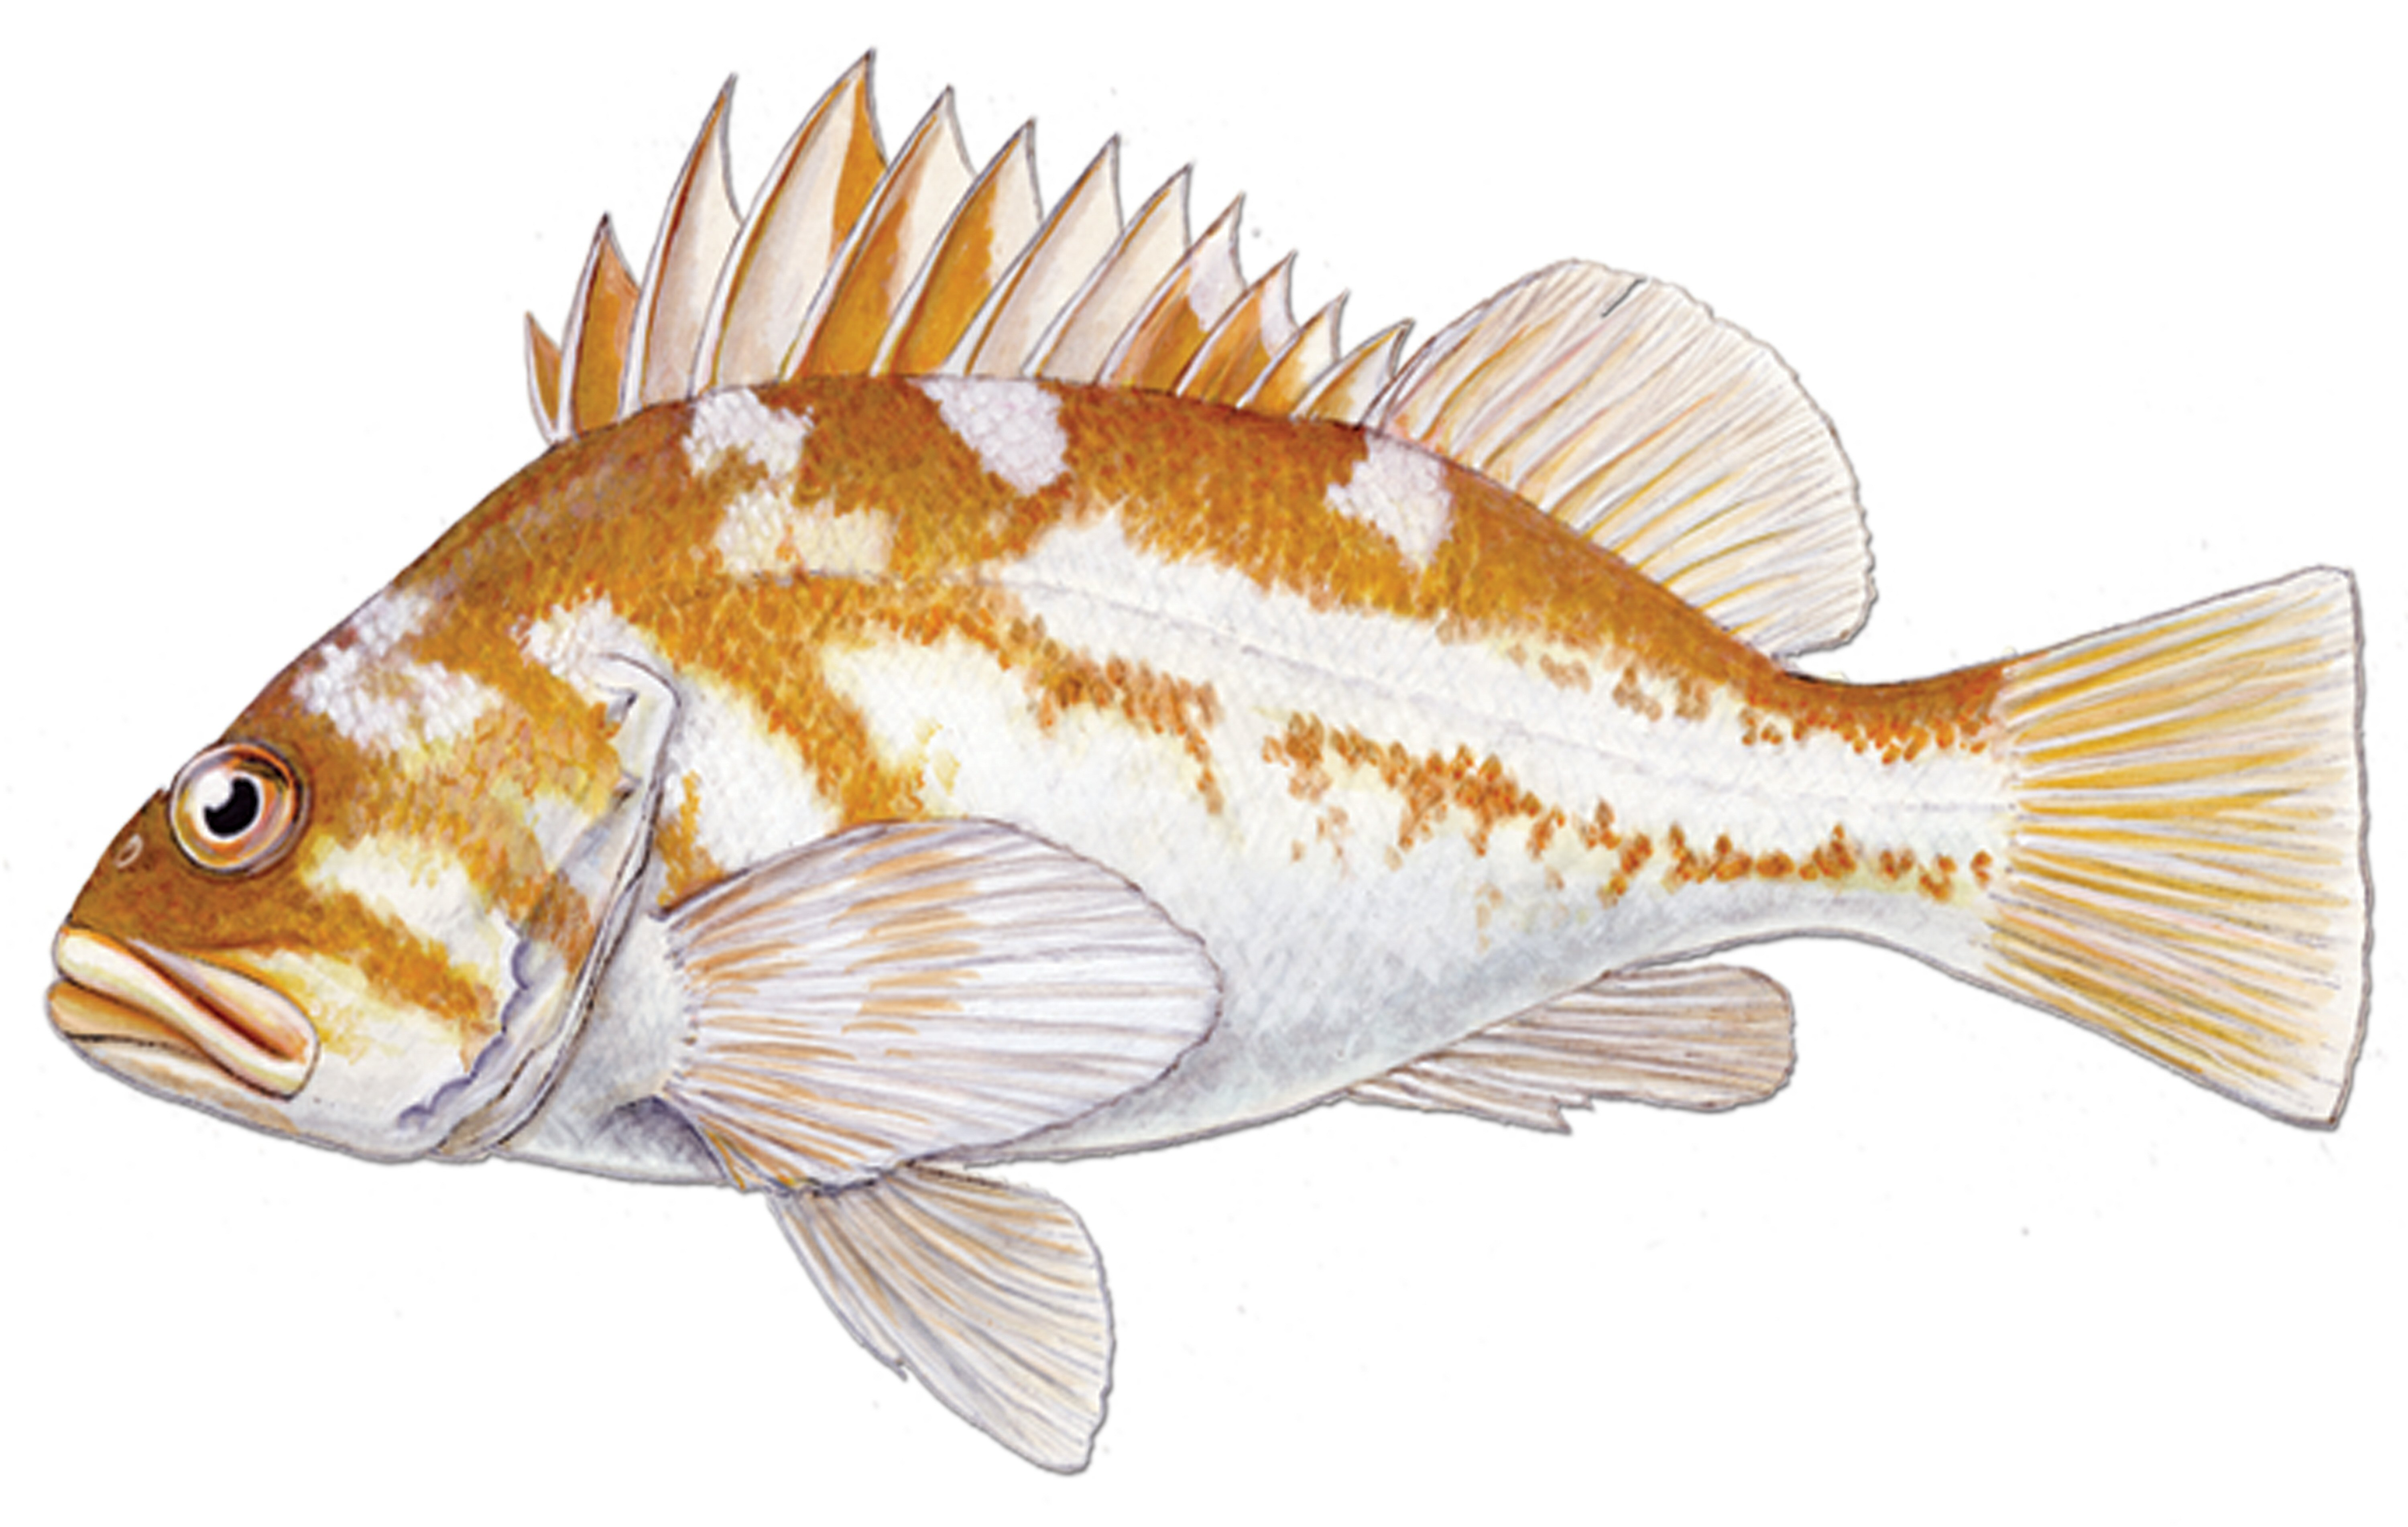 Copper_rockfish_fishid2